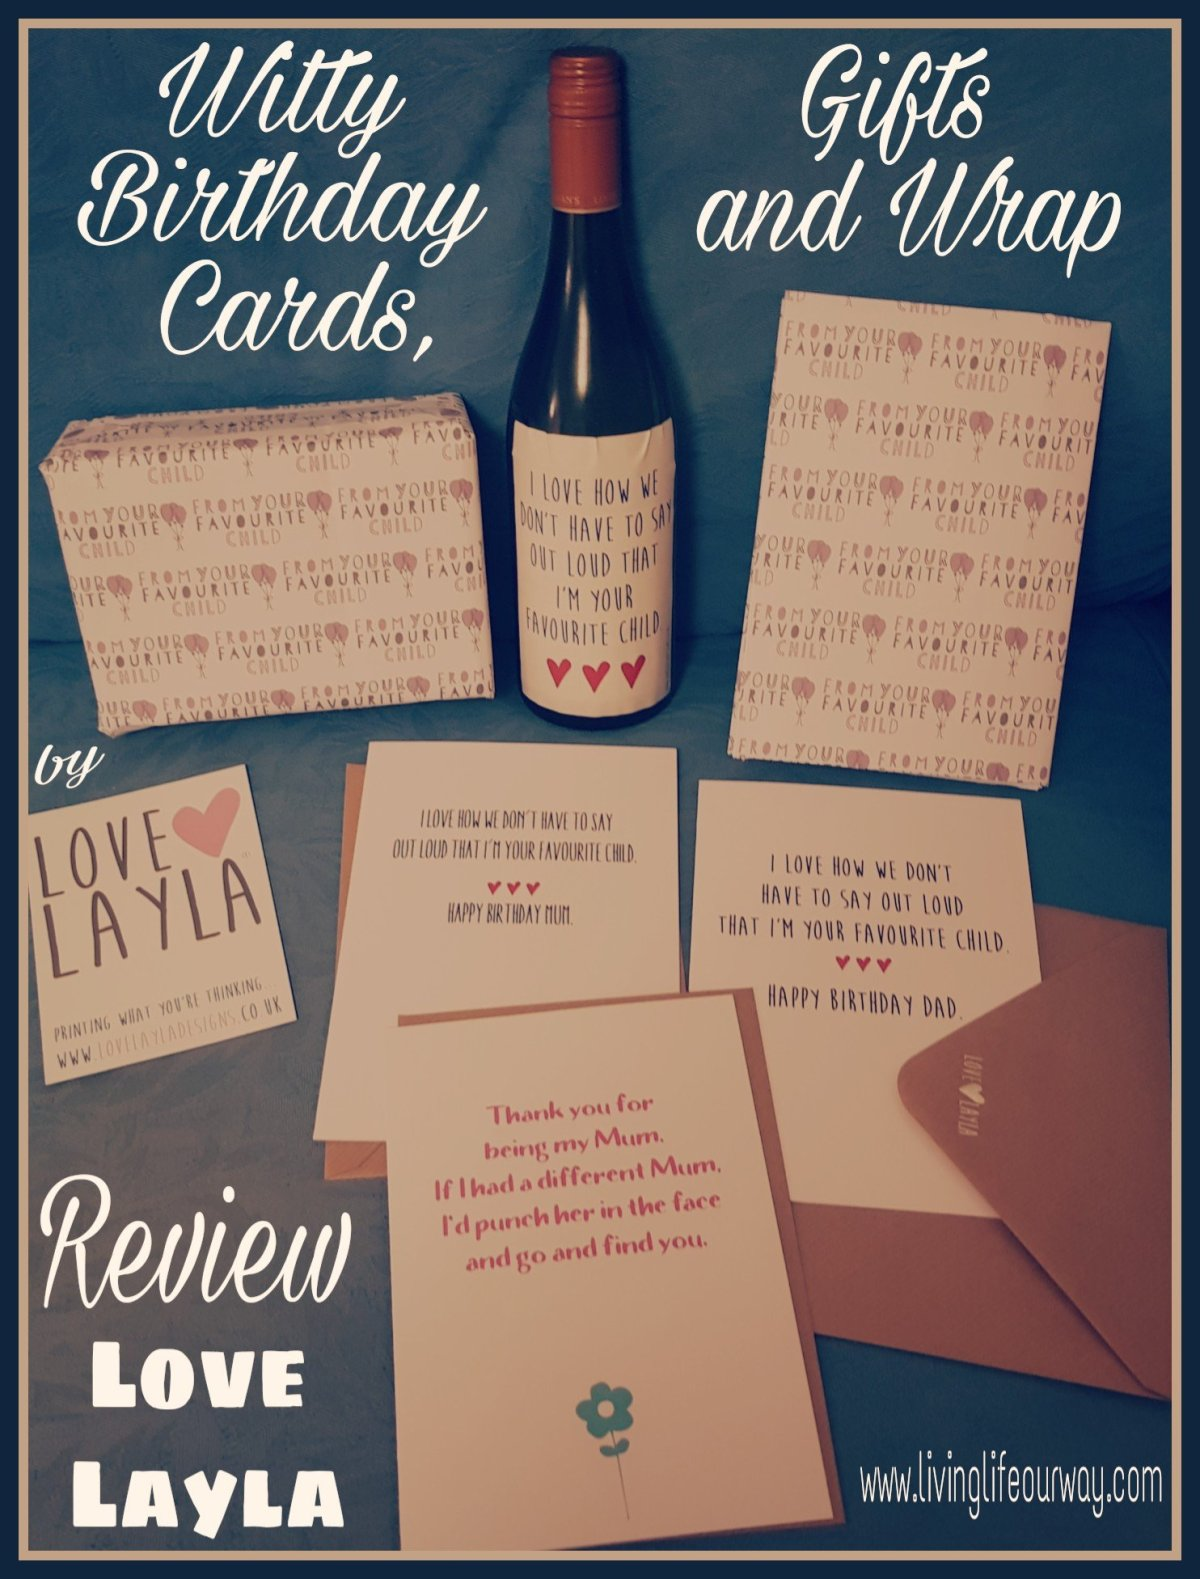 Love Layla Witty Birthday Cards Gifts And Wrap Review Living